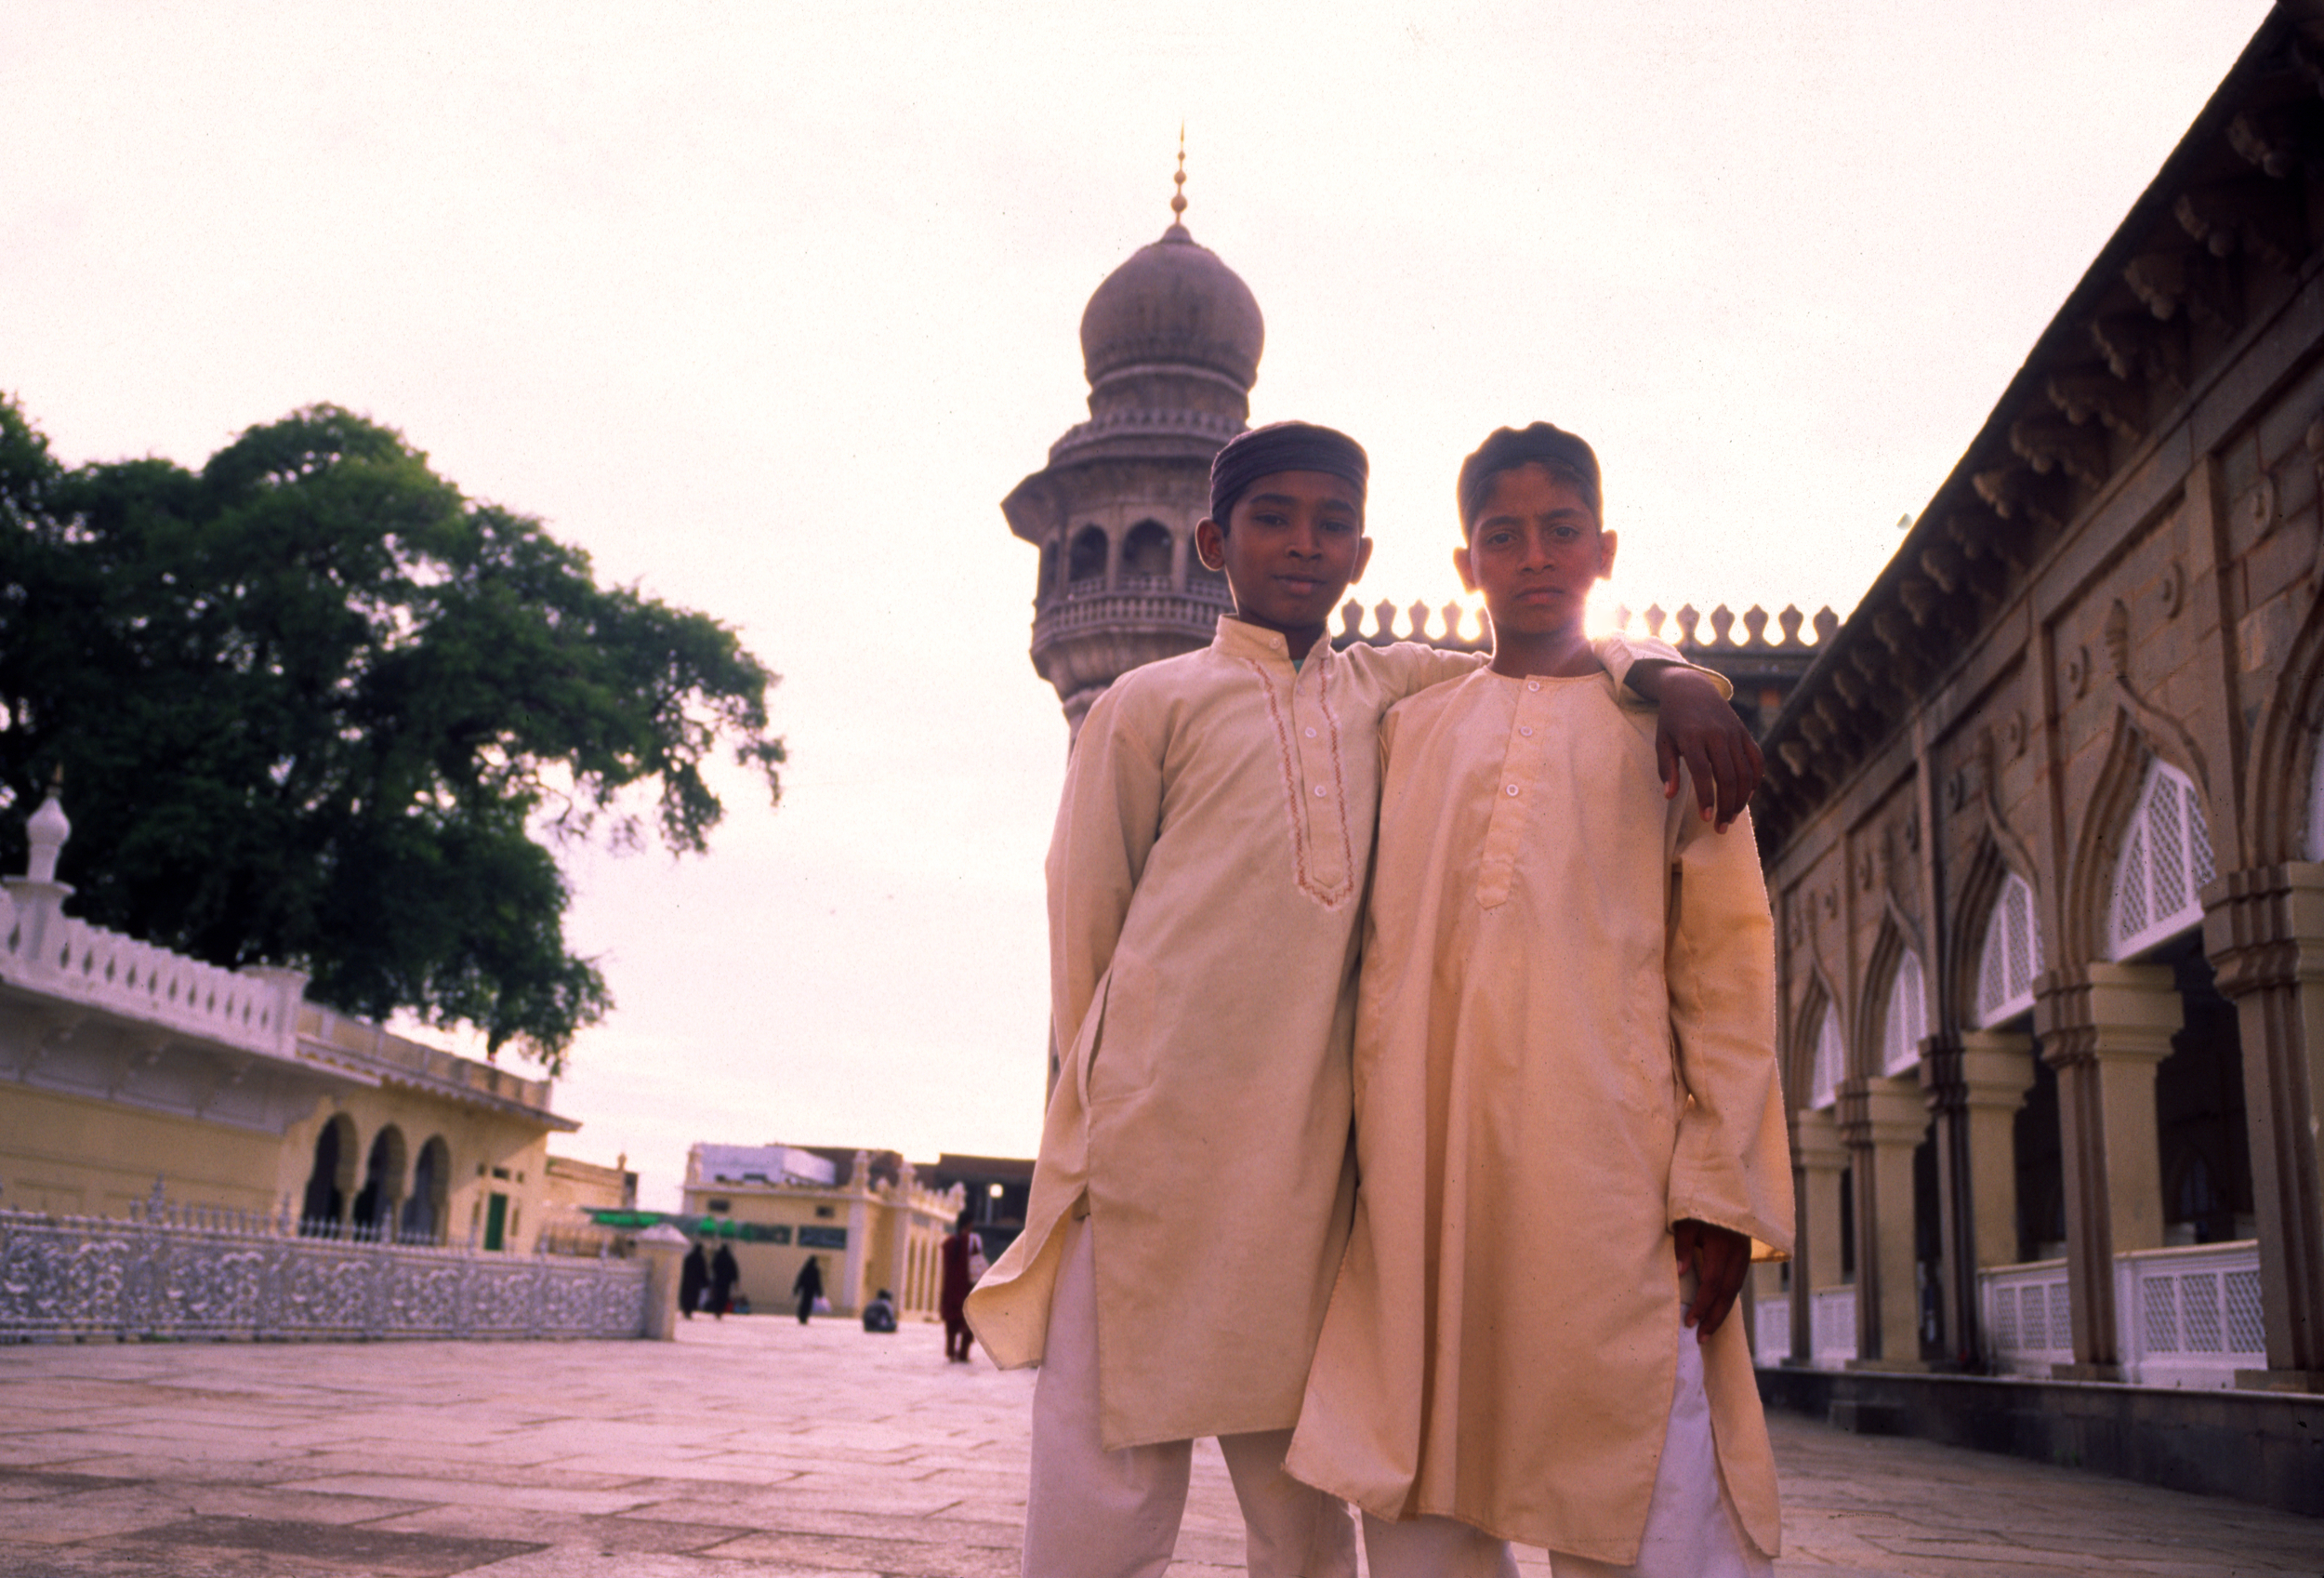 Boys outside the Mecca Mosque in Hyderabad, India in 2006.